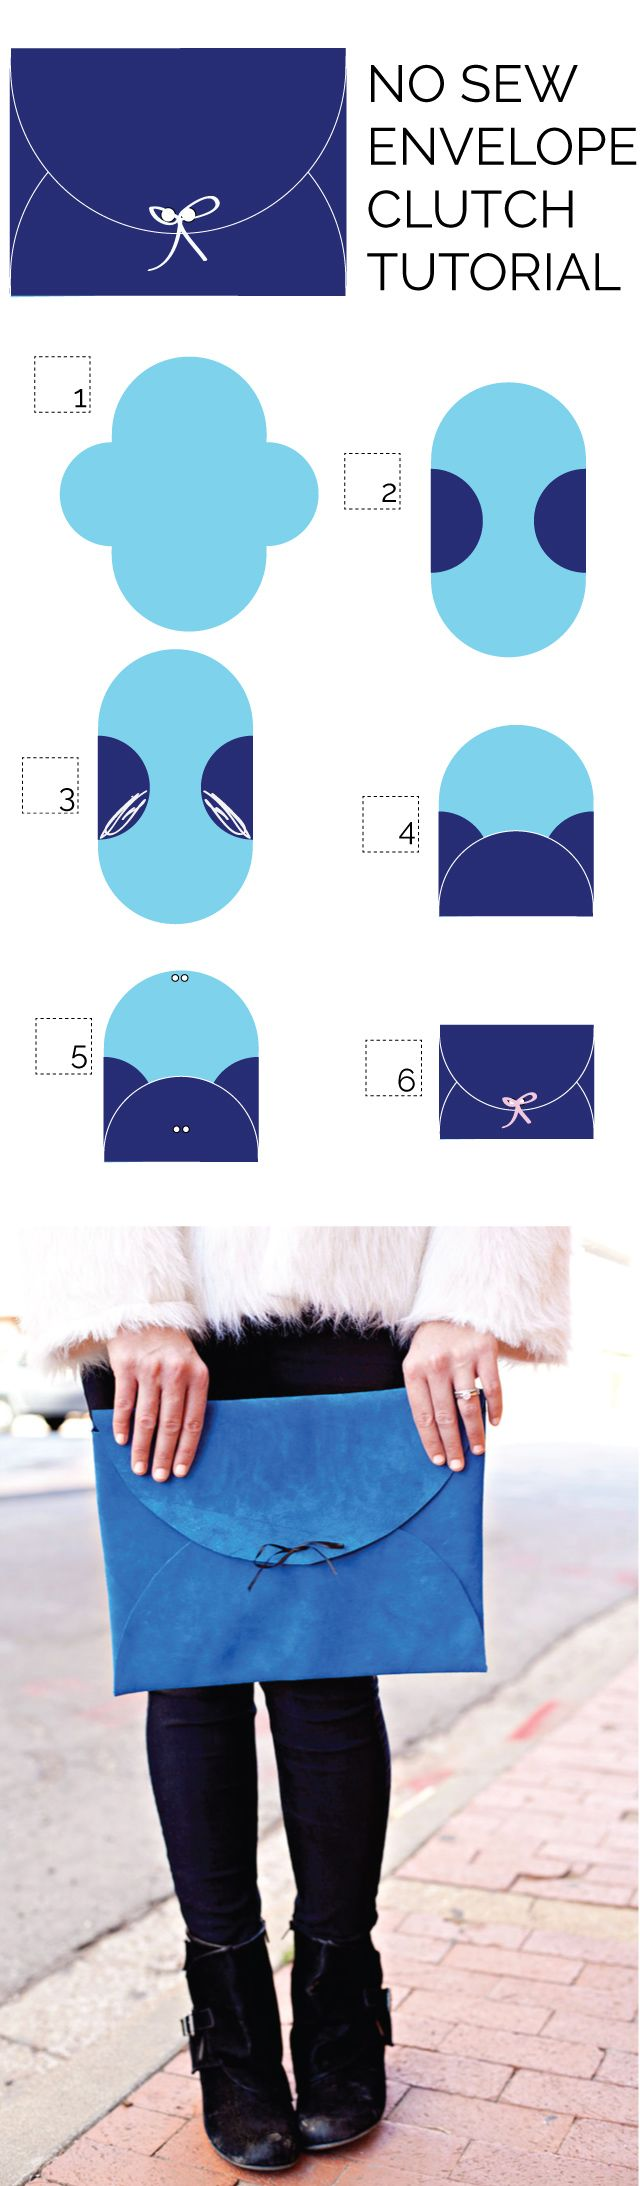 no sew leather clutch tutorial with template